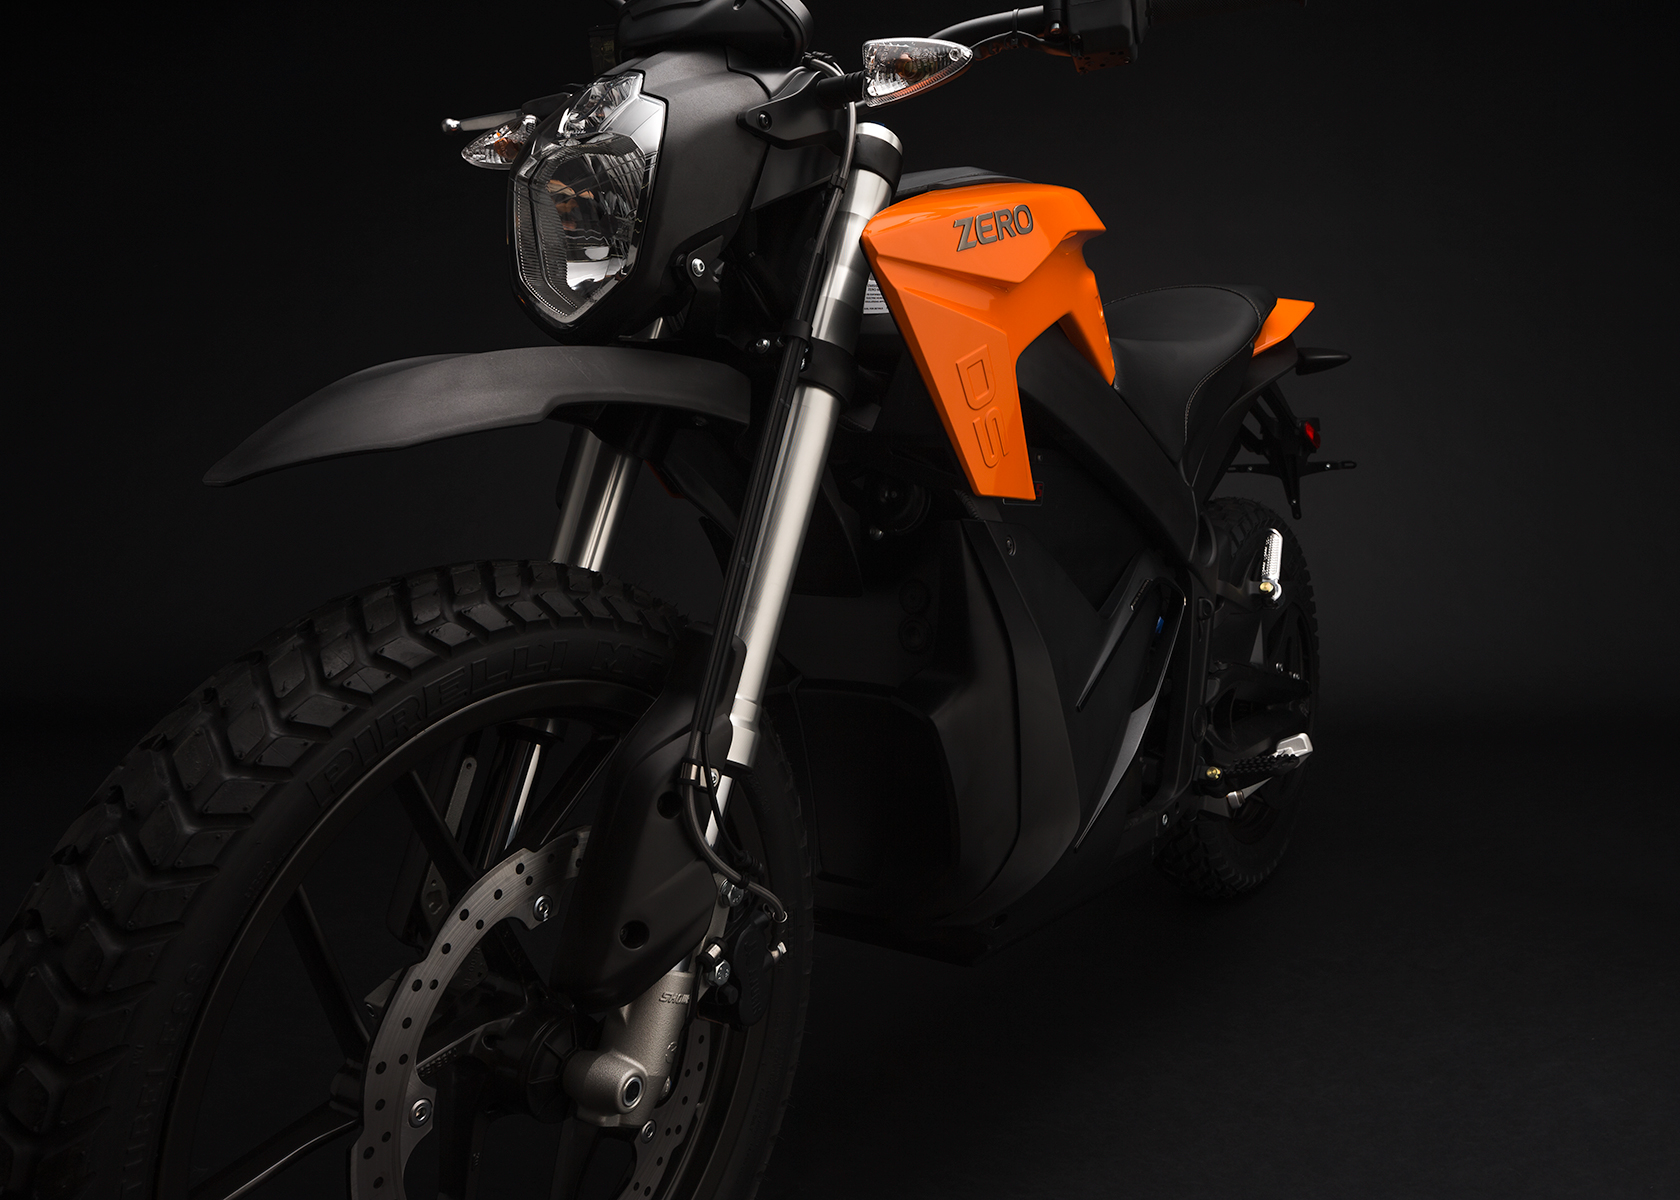 2015 Zero DS Electric Motorcycle: Front Fork